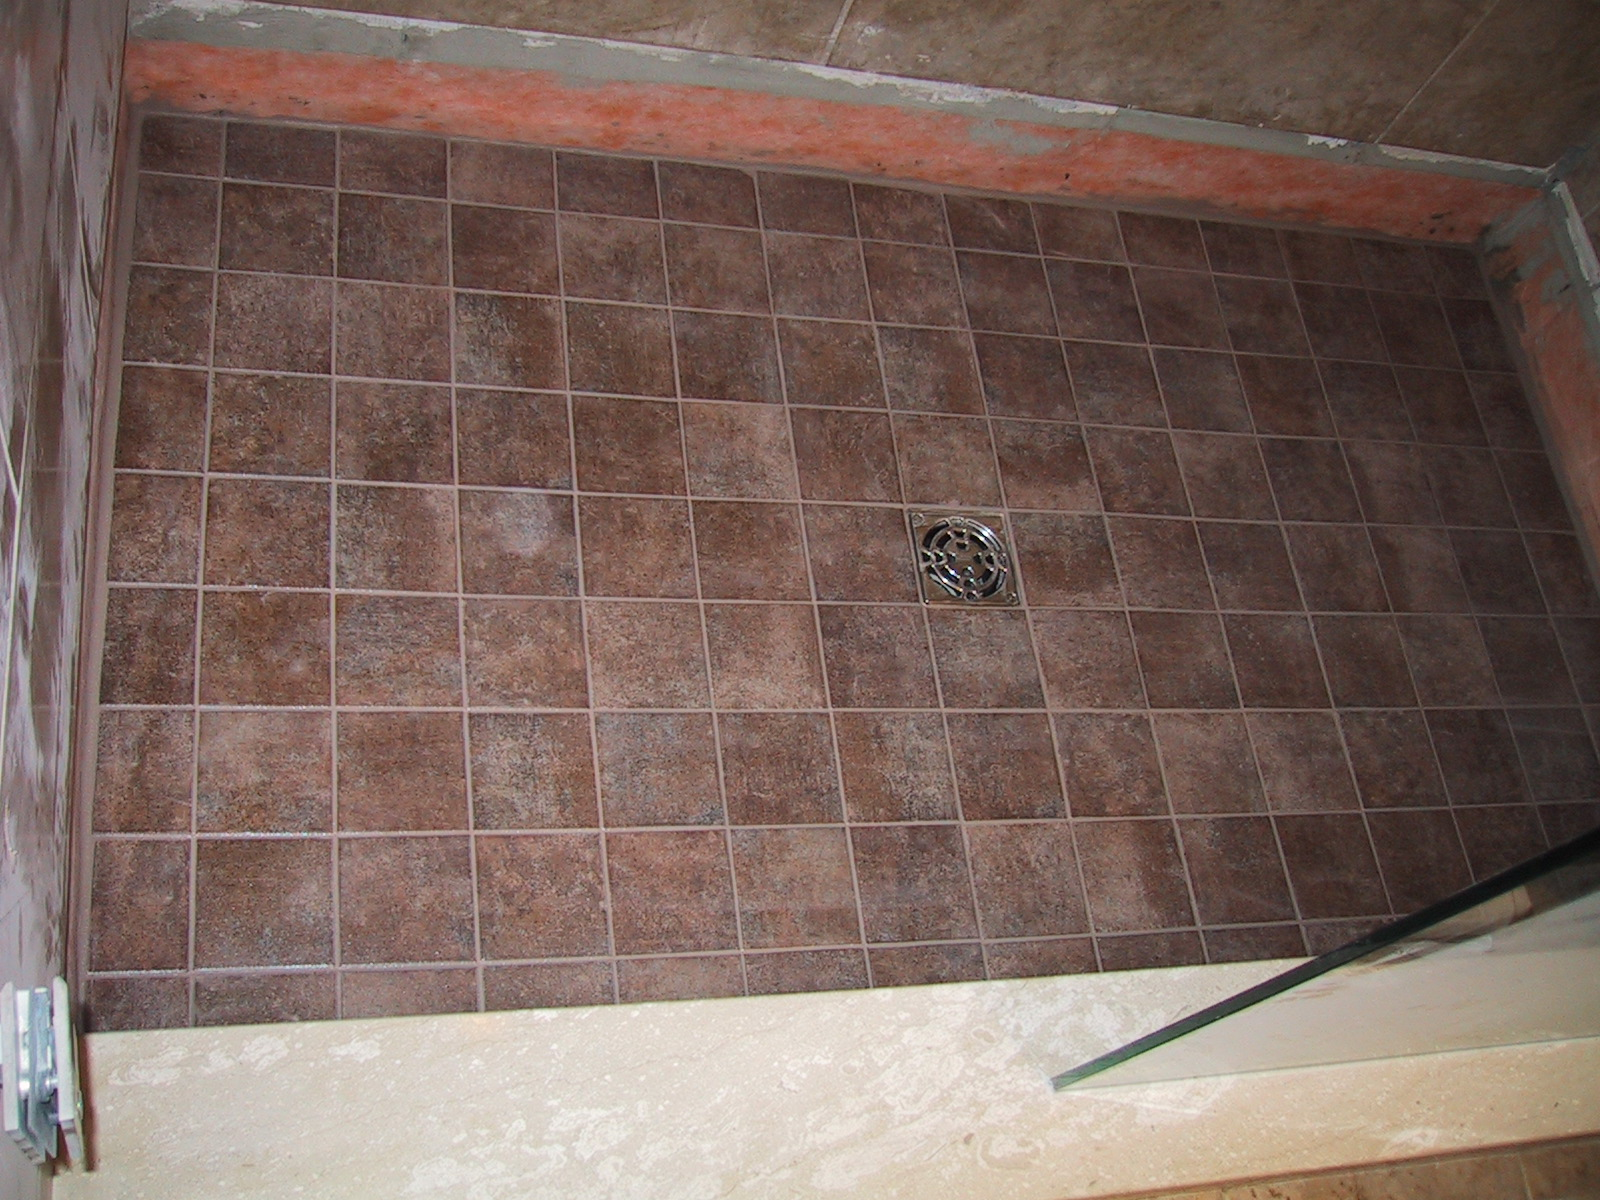 Beautifully Tile Shower Floor Will Go A Long Way For You And Your